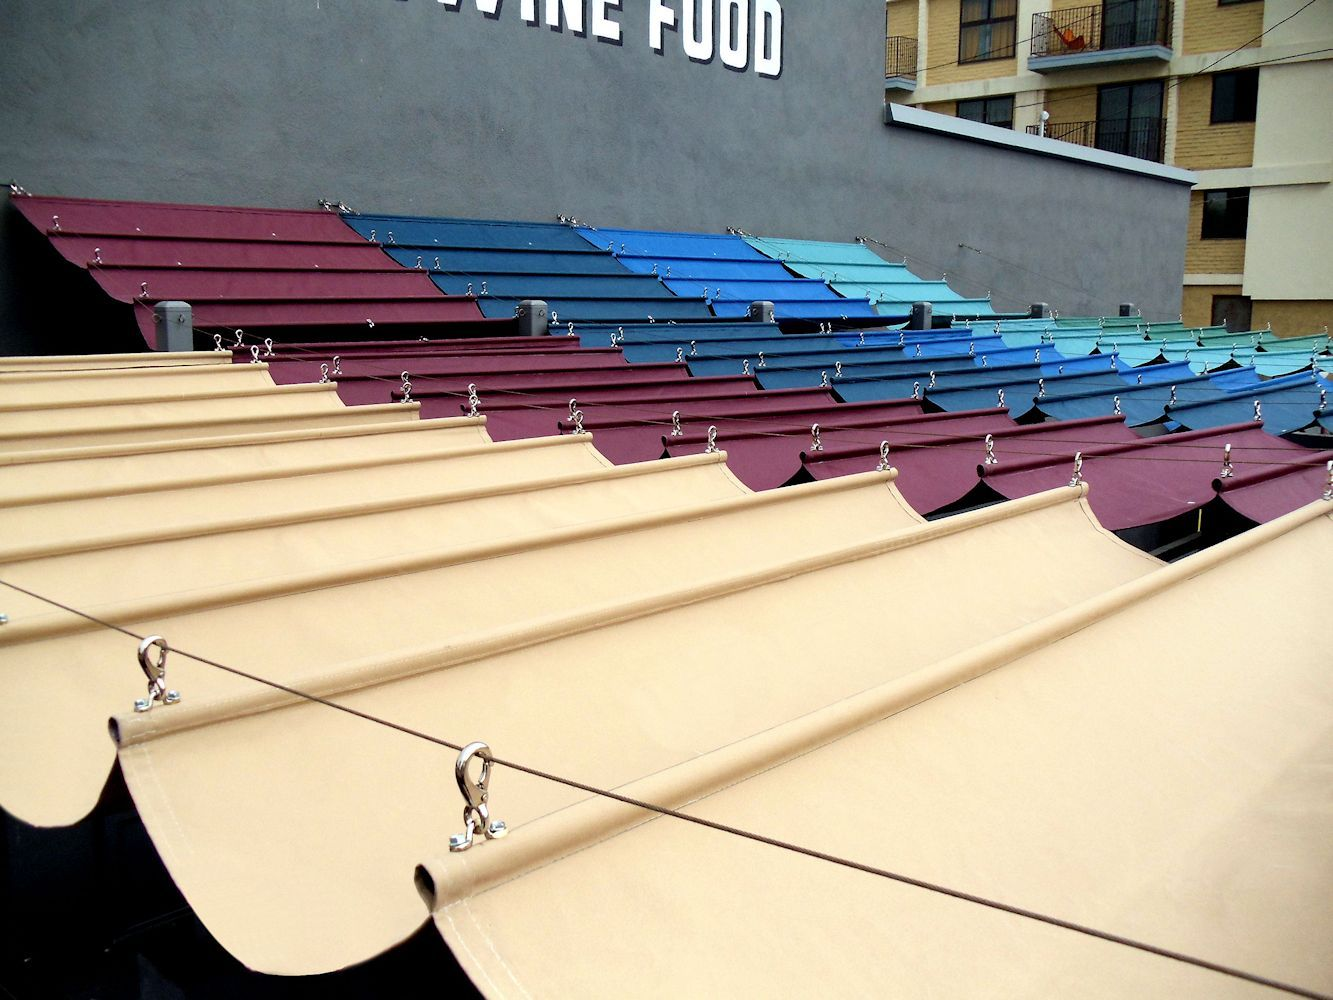 Slide Wire Cable Awnings By Superior Awning.Let The Sun Shine!